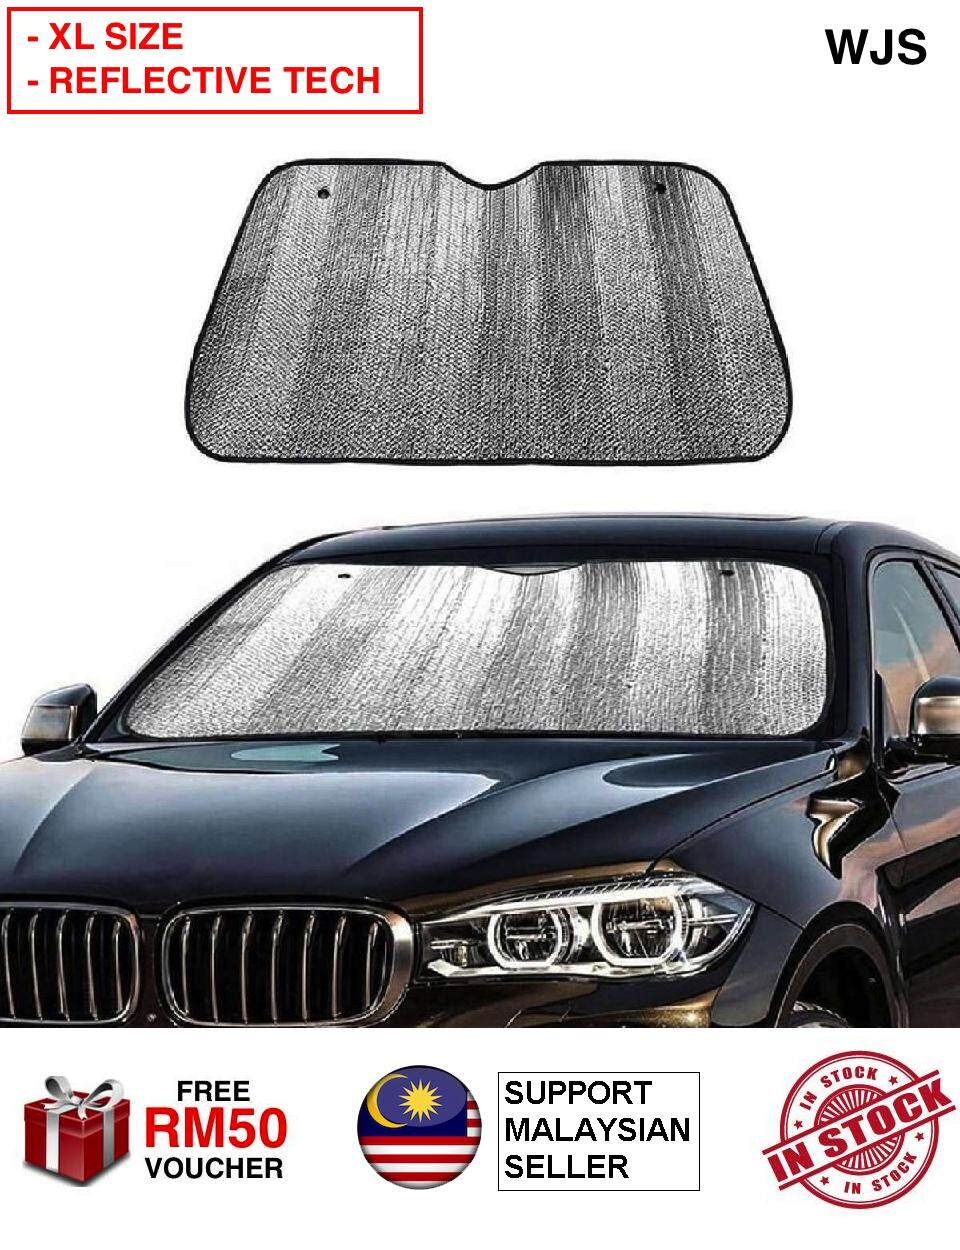 (WITH REFLECTOR TECHNOLOGY) WJS Extra Large Car Sunshade Solar Reflective Vehicle Cool Sun Shades Block UV Rays Front Car Sunshade Windshield with 2 Suction Suckers for Car SUV Trucks SILVER [FREE RM 50 VOUCHER]